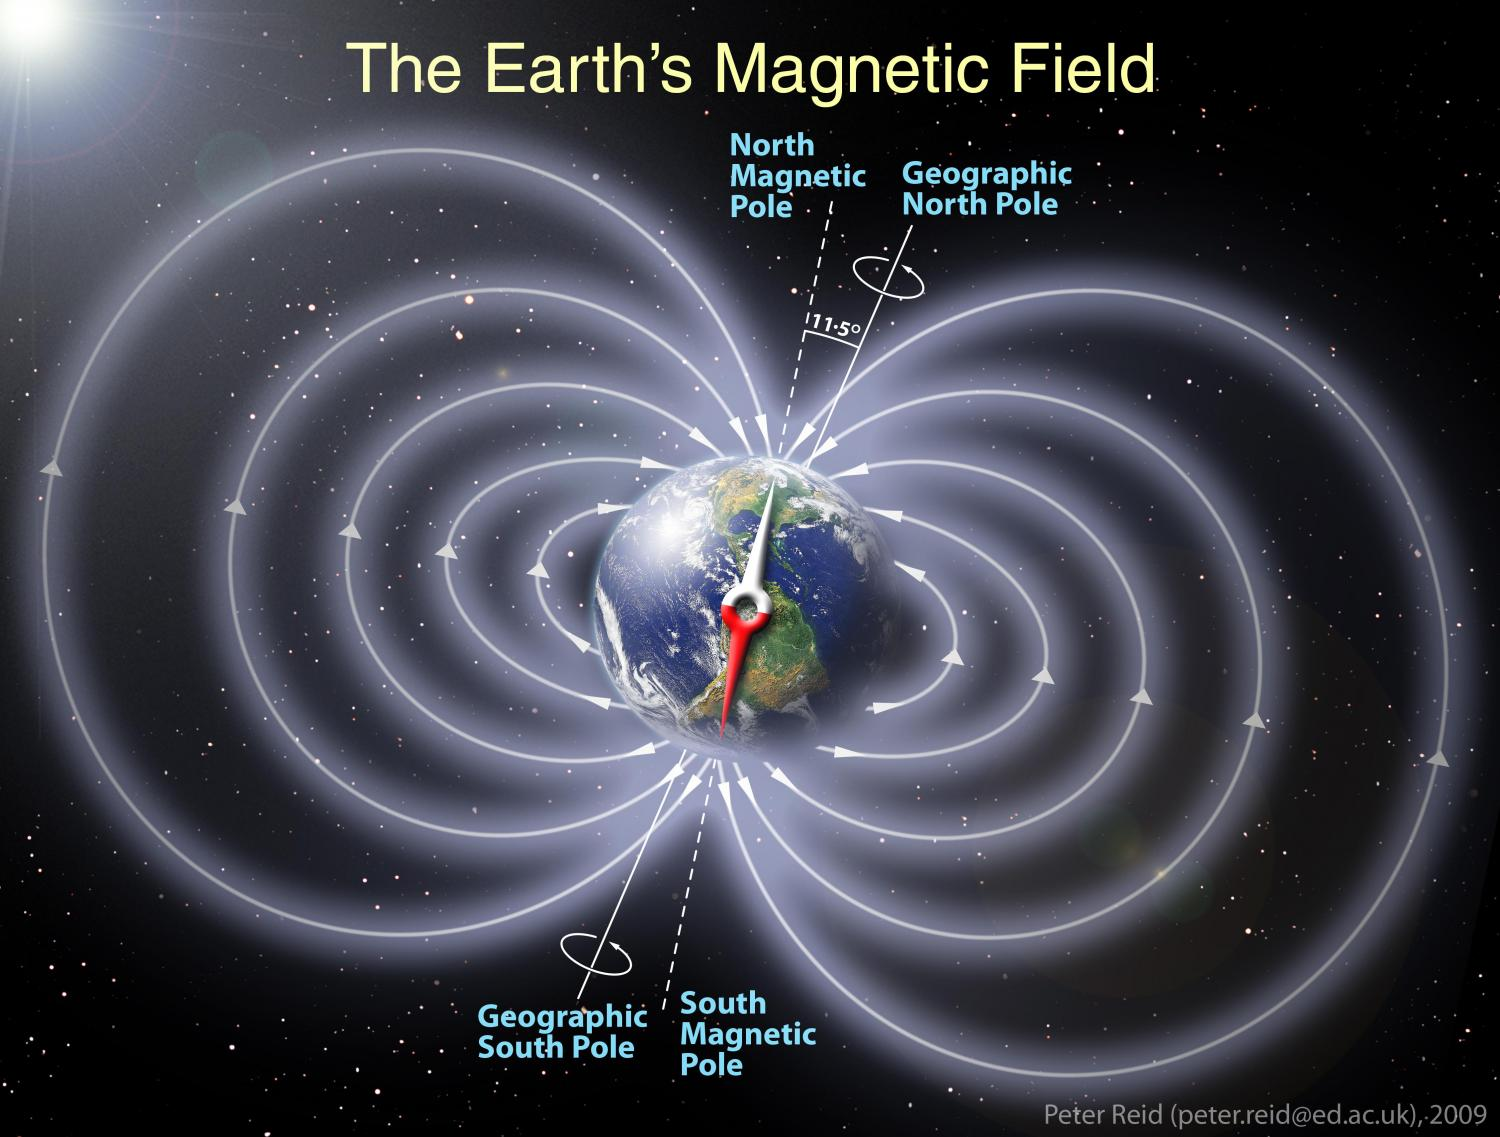 Possible Evidence Of Human Ability To Detect Earths Magnetic Field Solar Wind Diagram Widows The Universe Image Sun Images Schematic Illustration